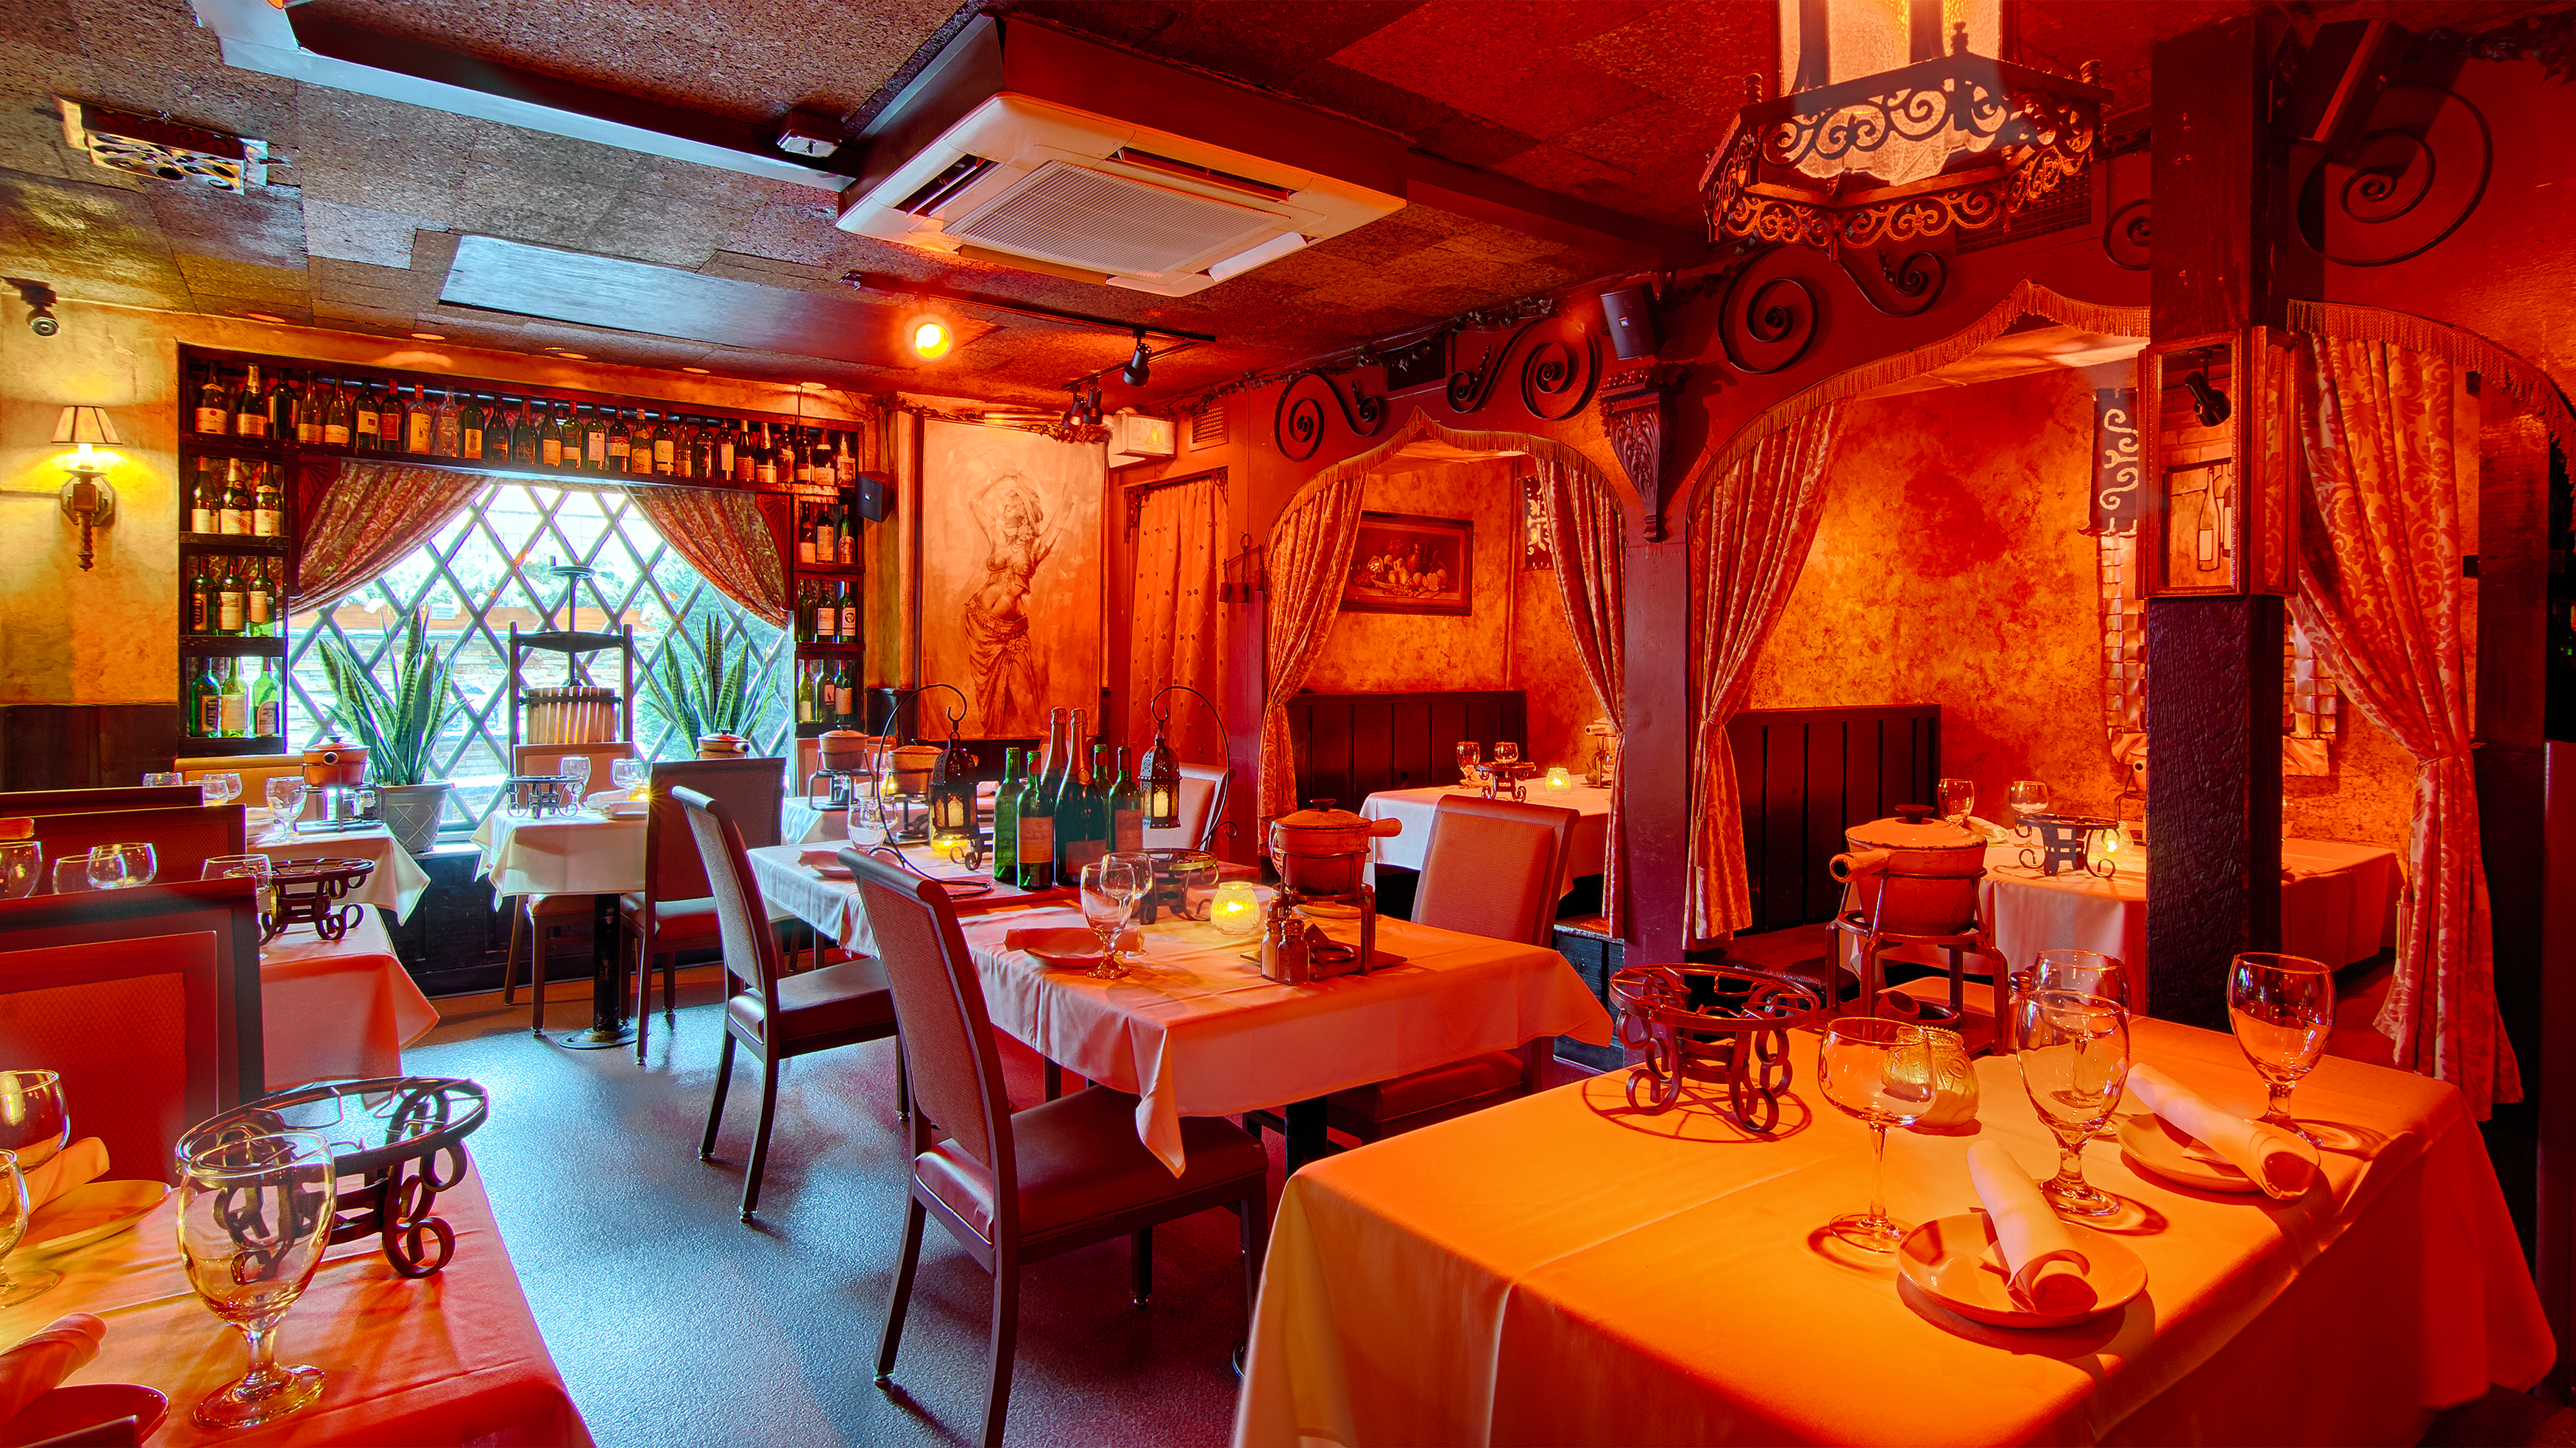 The Worlds 25 Most Romantic Restaurants Destination Dorworth